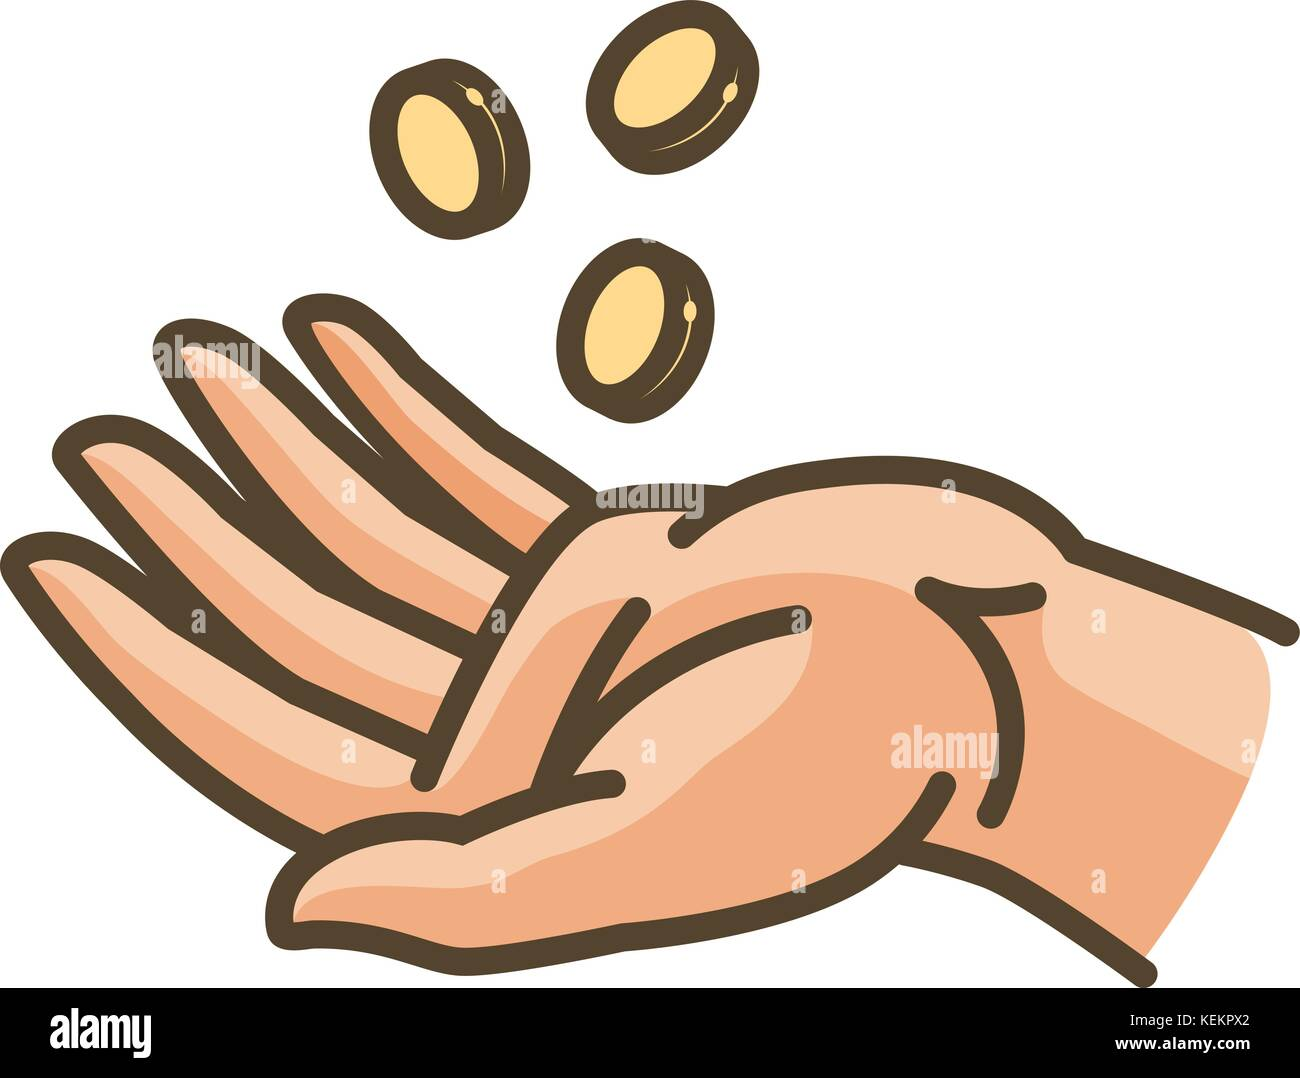 Hand and money or gold coins. Earnings, cash, profit, income icon. Vector illustration Stock Vector